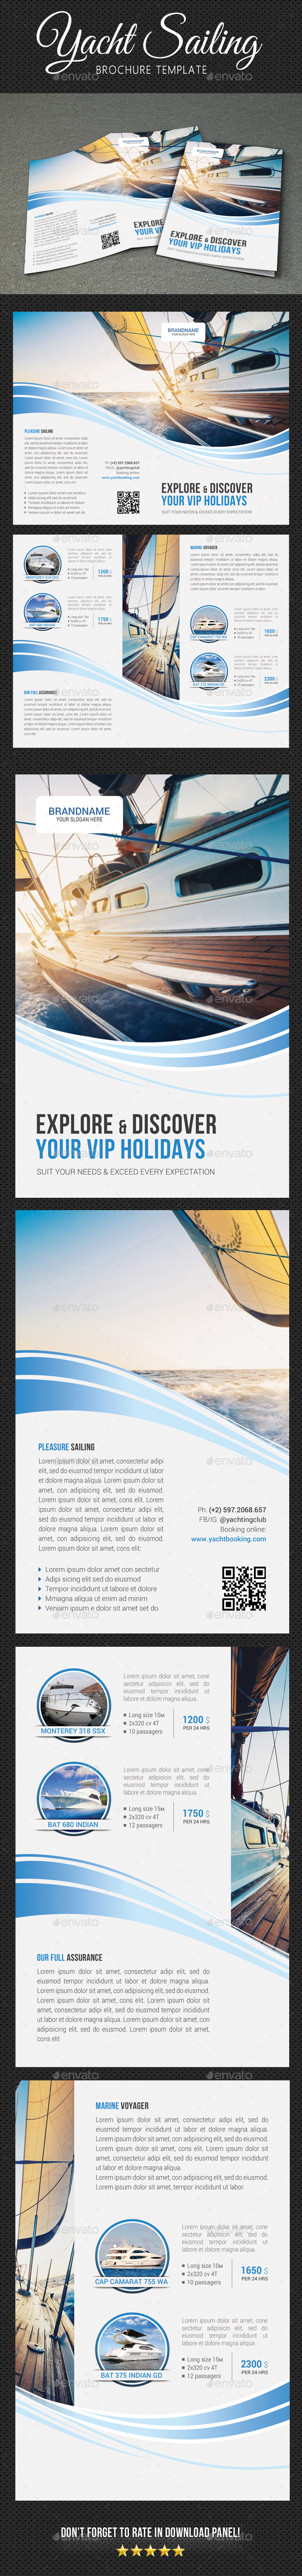 GraphicRiver Yachting Brochure 3 20674185